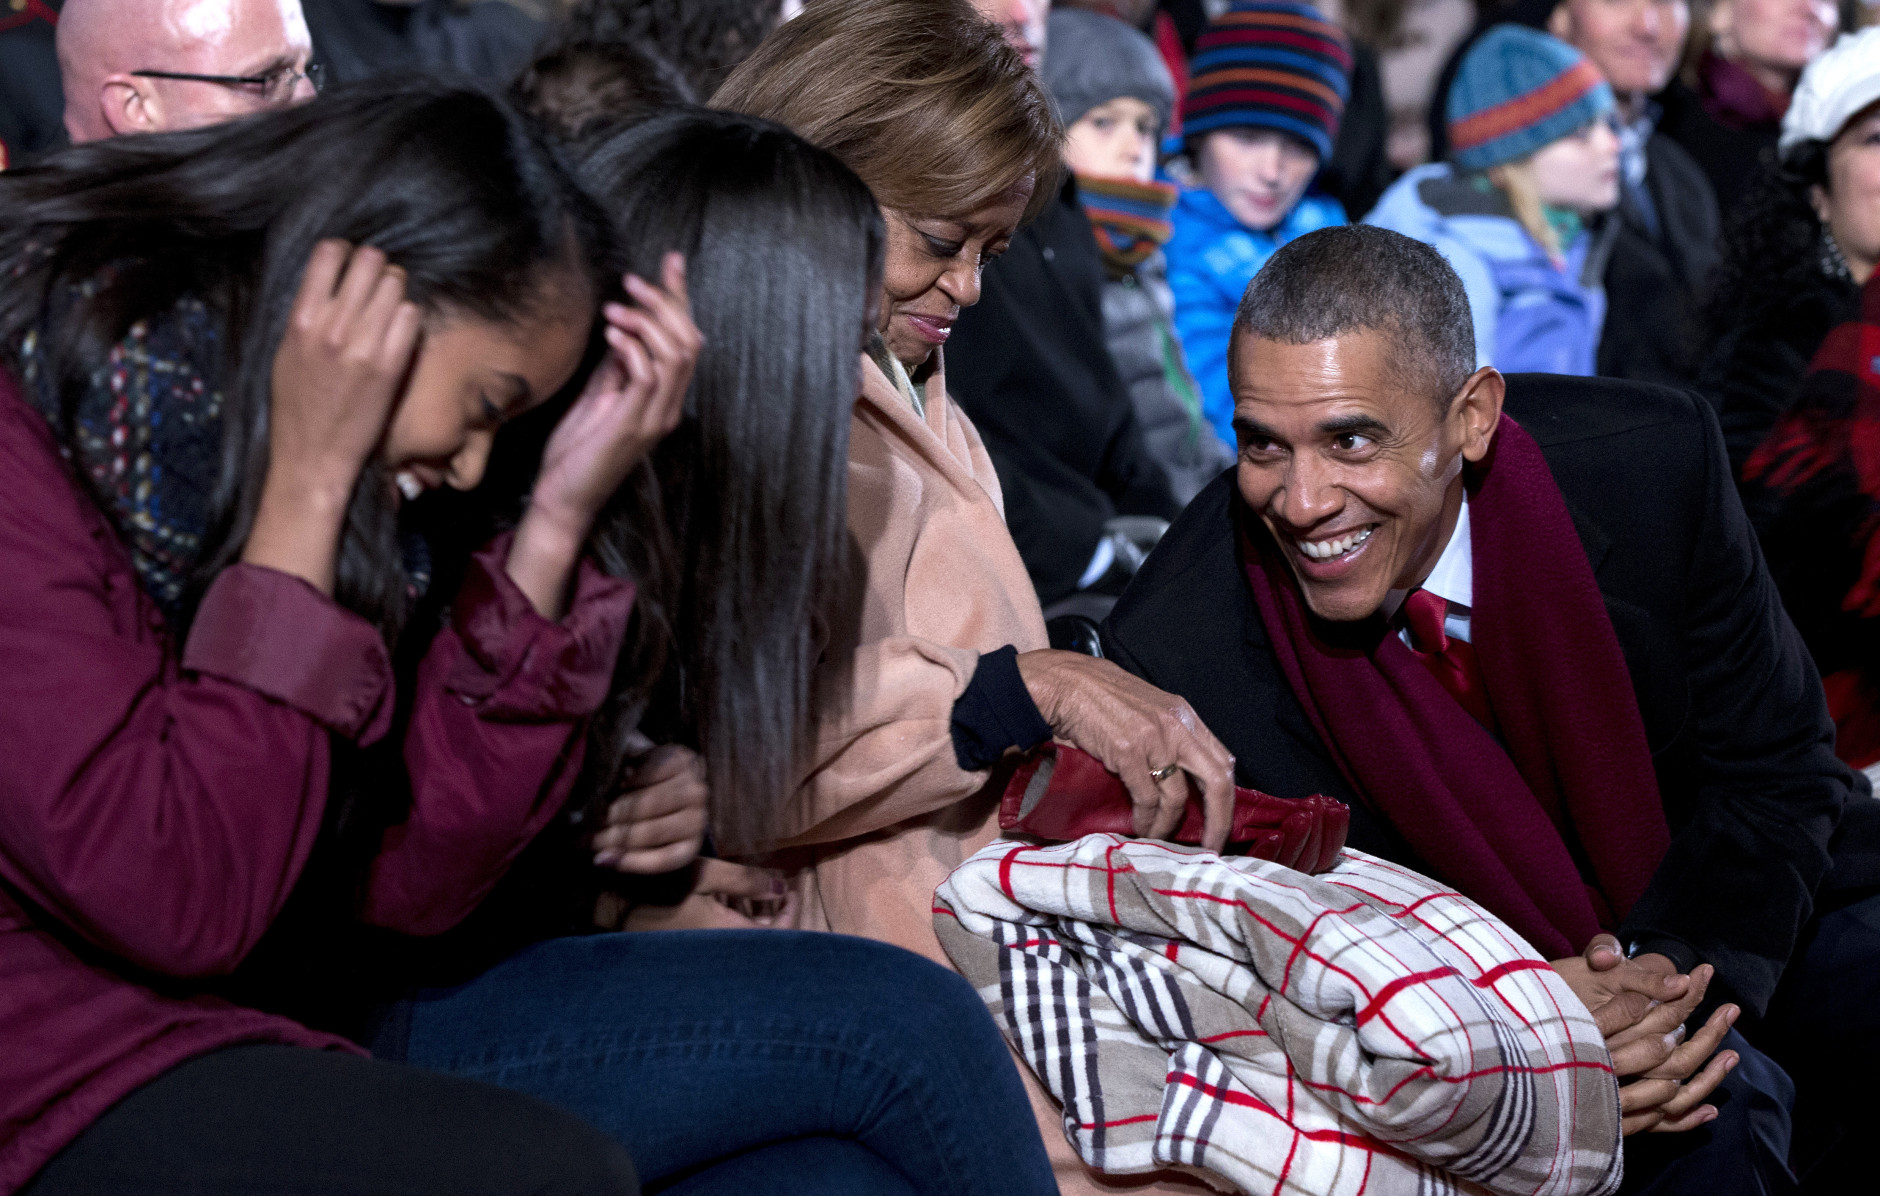 President Barack Obama, leans to talk with his daughters Malia, left, Sasha, second from left, and first lady Michelle Obama's mother Marian Robinson during the National Christmas Tree Lighting ceremony at the Ellipse in Washington, Thursday, Dec. 3, 2015. (AP Photo/Carolyn Kaster)